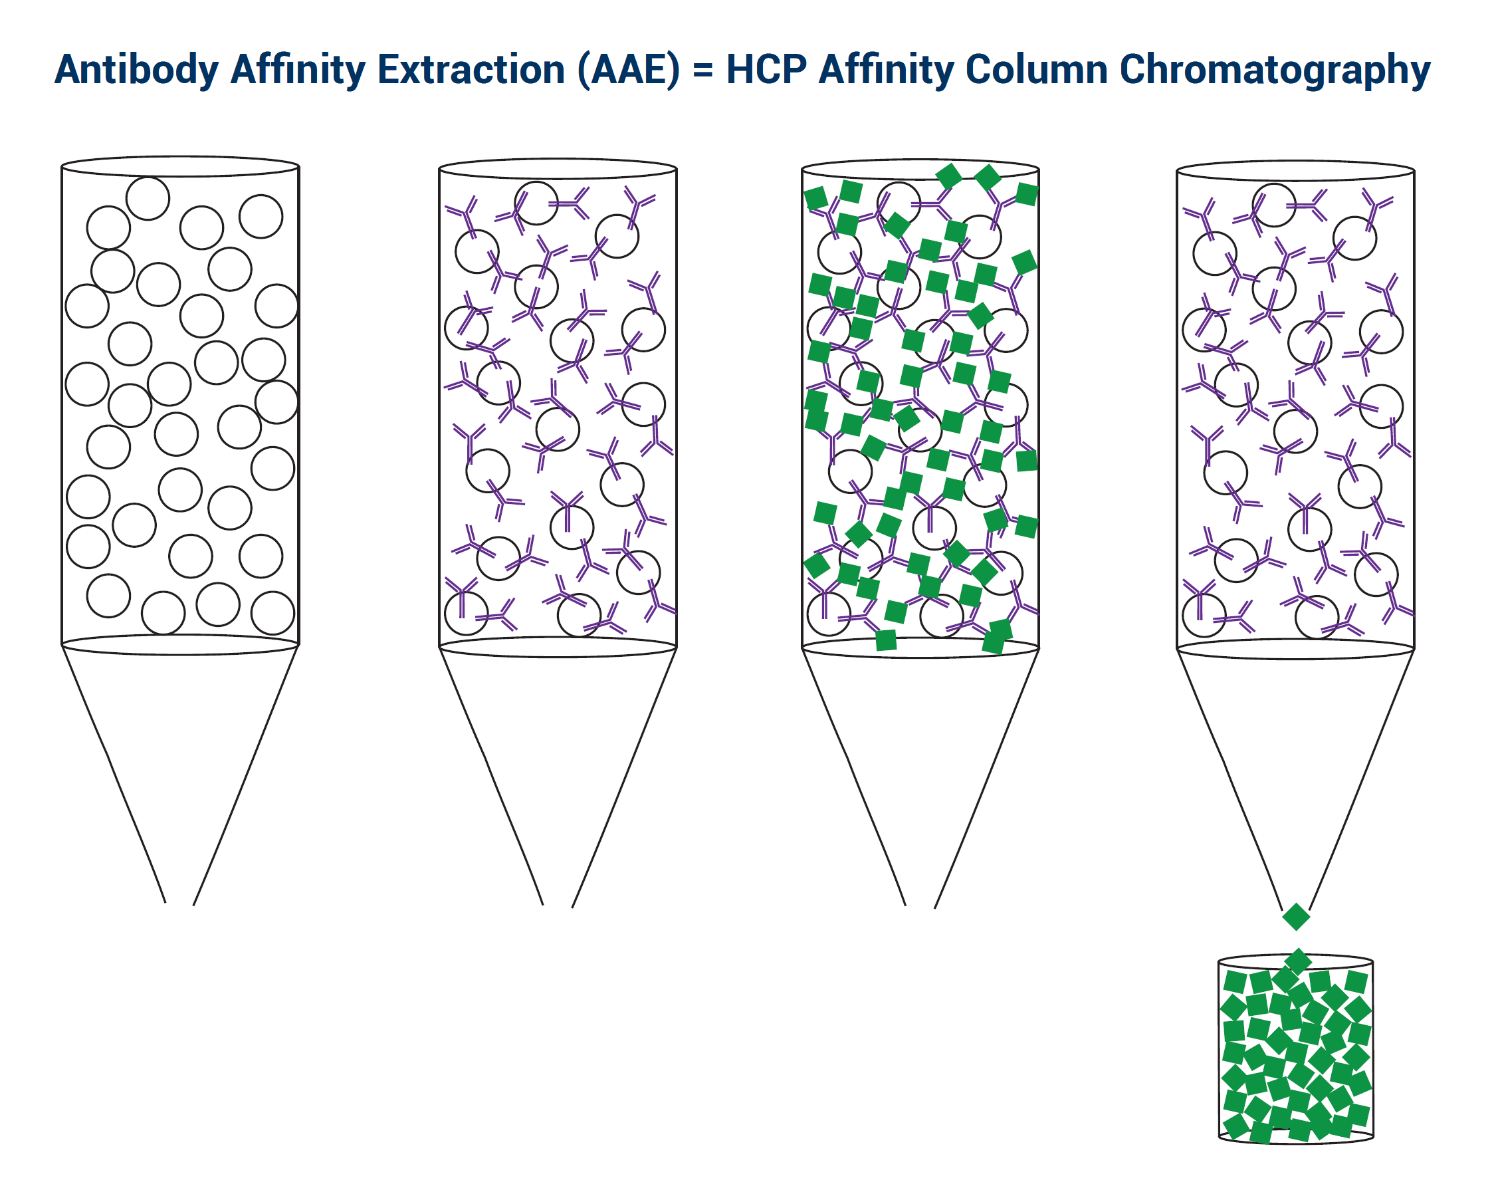 Antibody Affinity Extraction